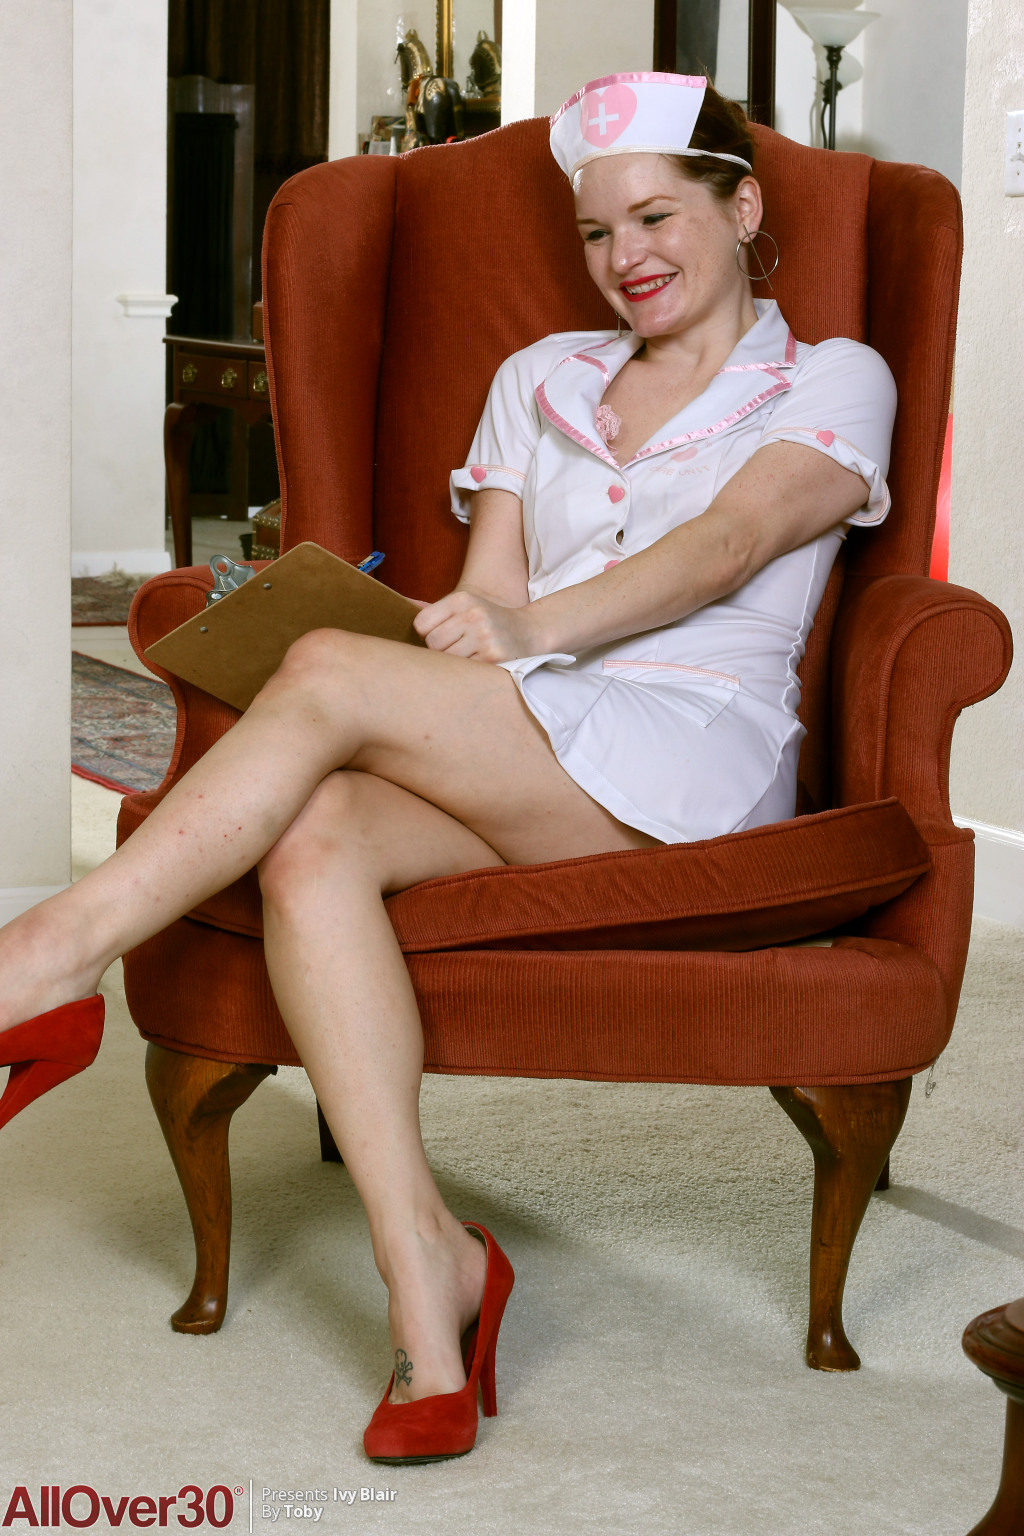 Ivy Blair from AllOver30